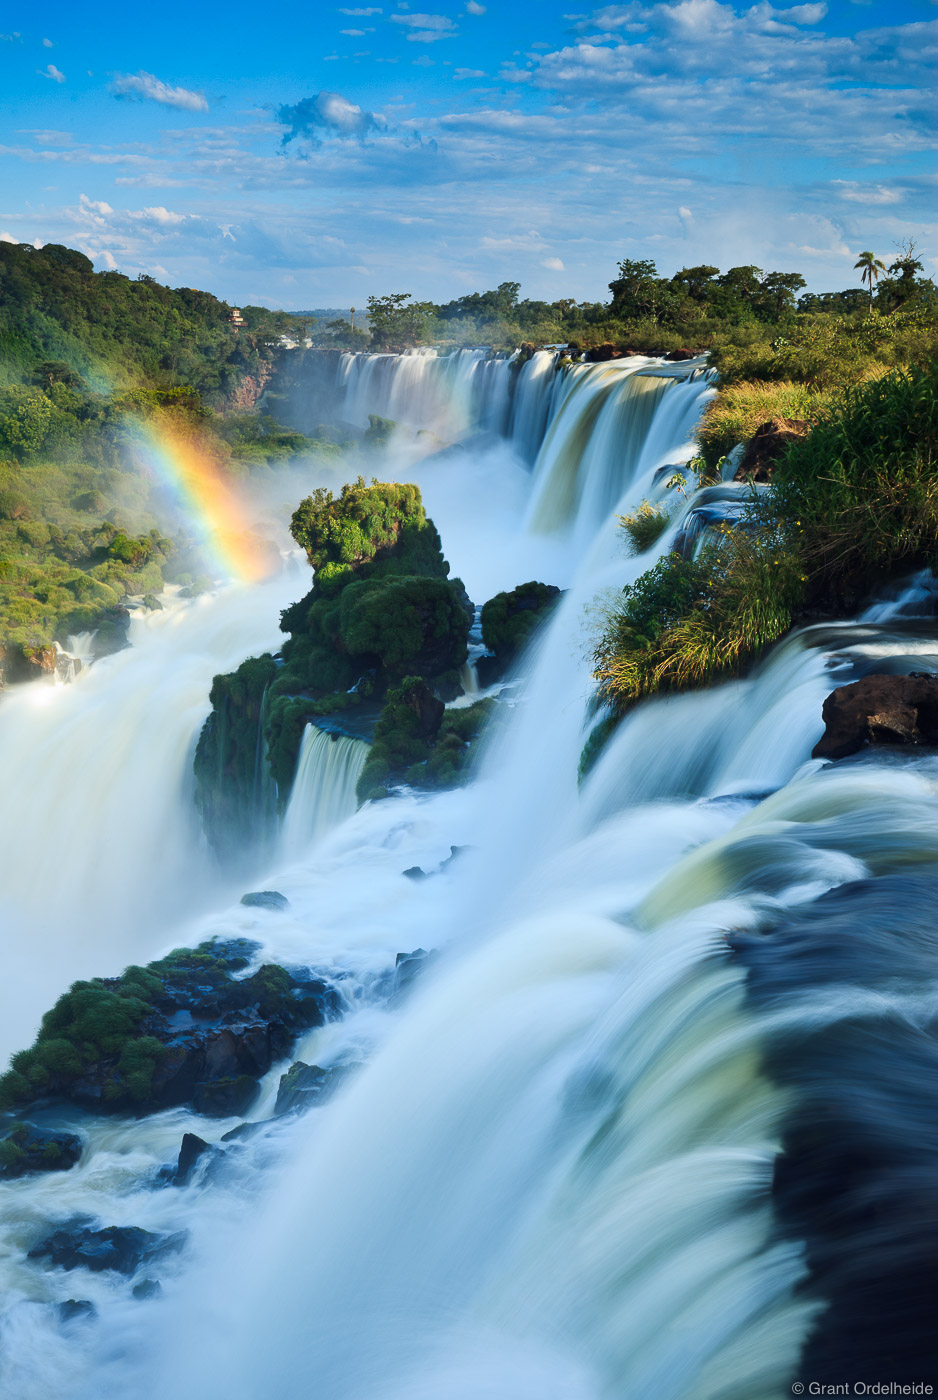 Located the border of Argentina and Brazil, the massive waterfalls of Iguazuare some of South America's largest.